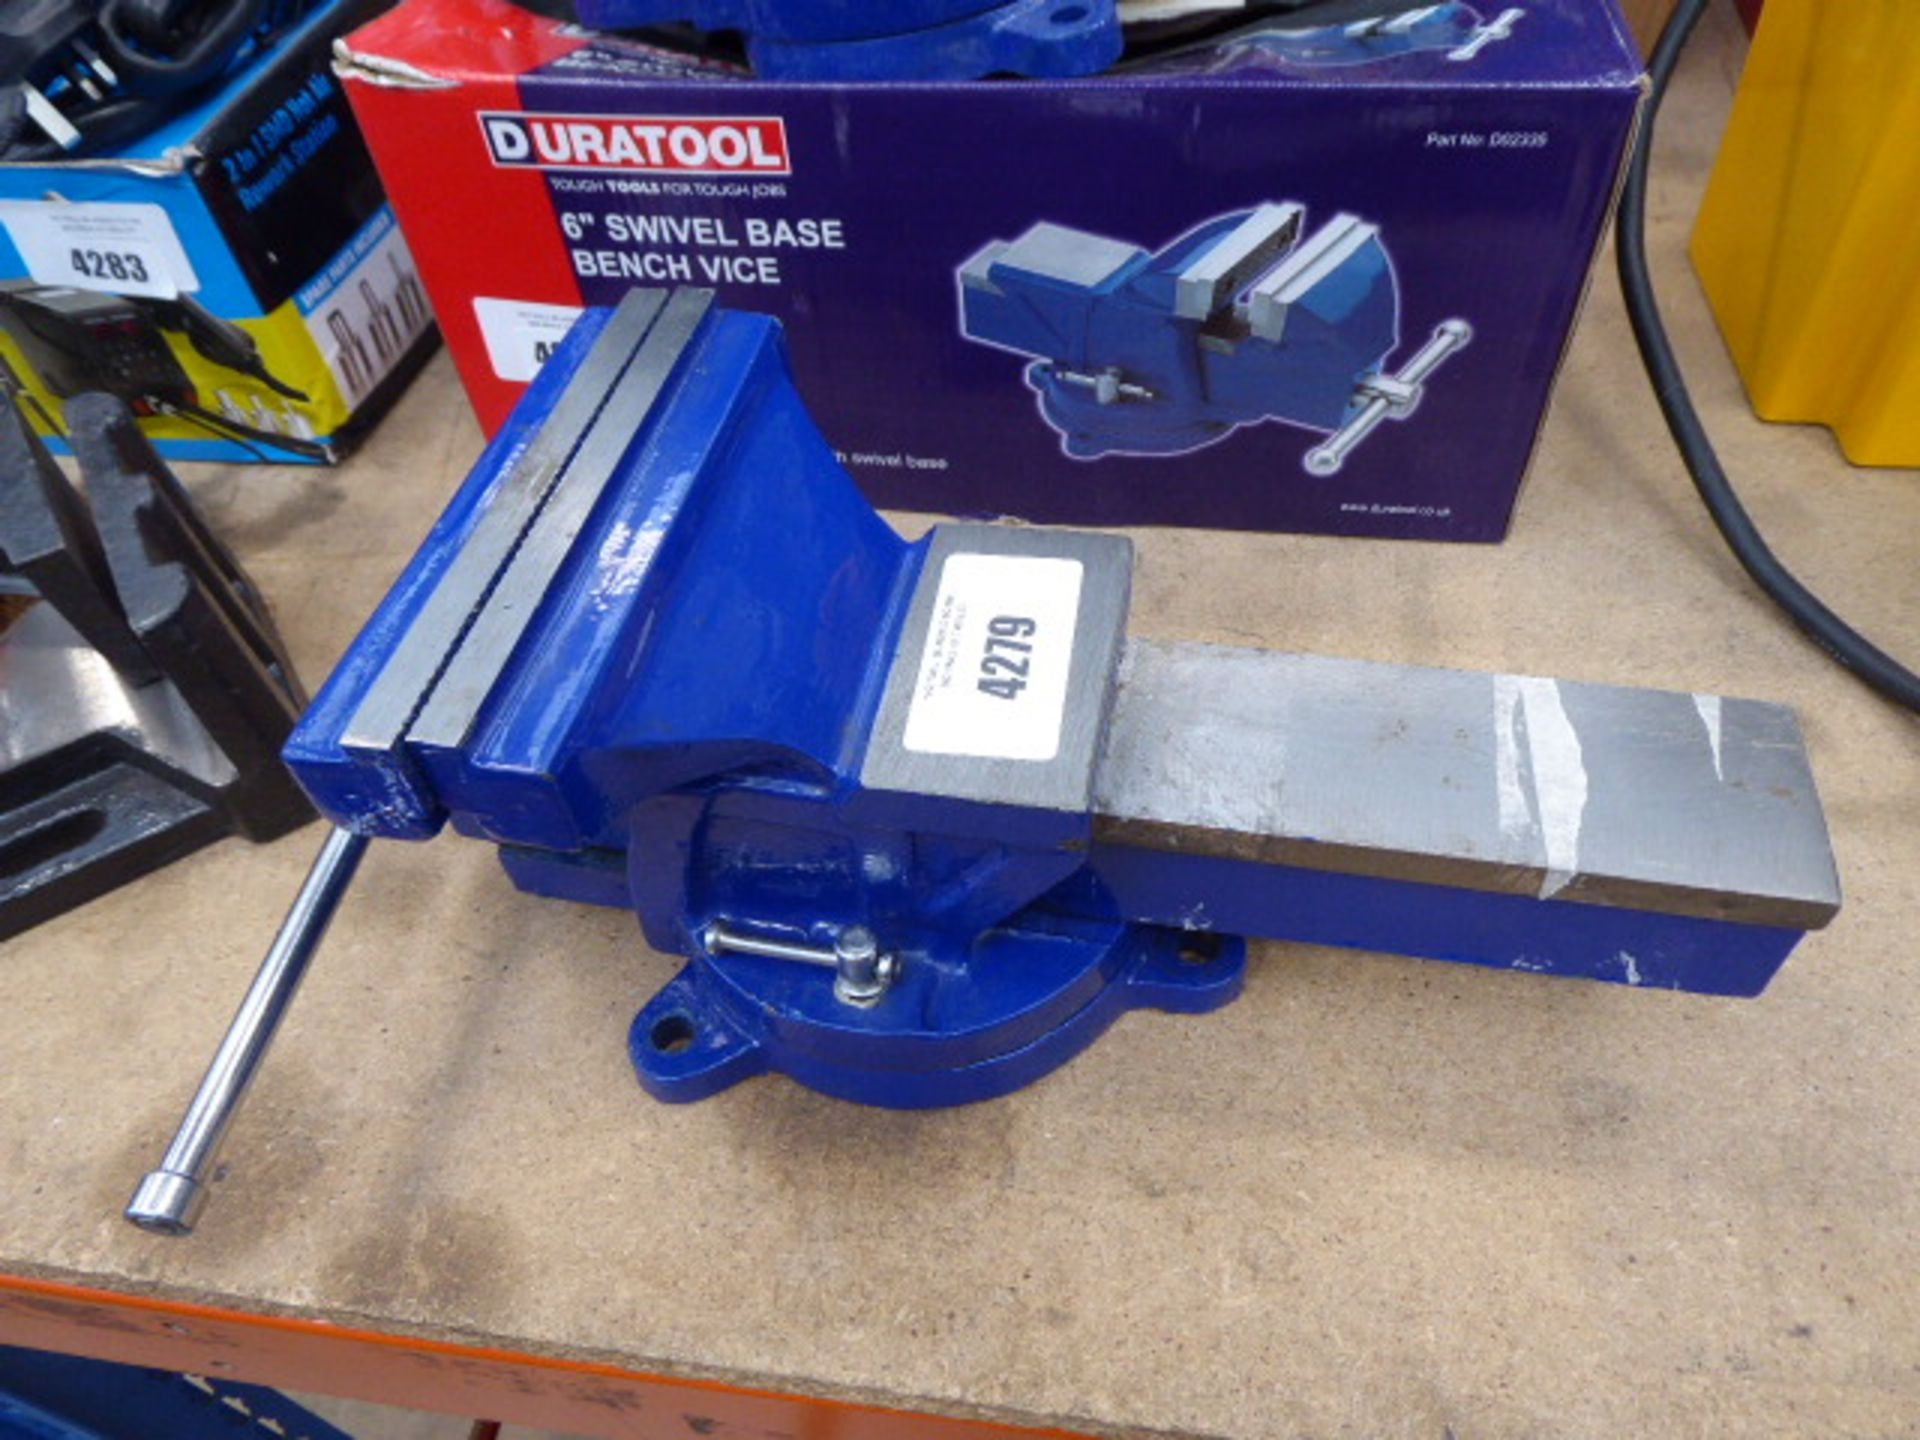 Unboxed swivel based bench vice